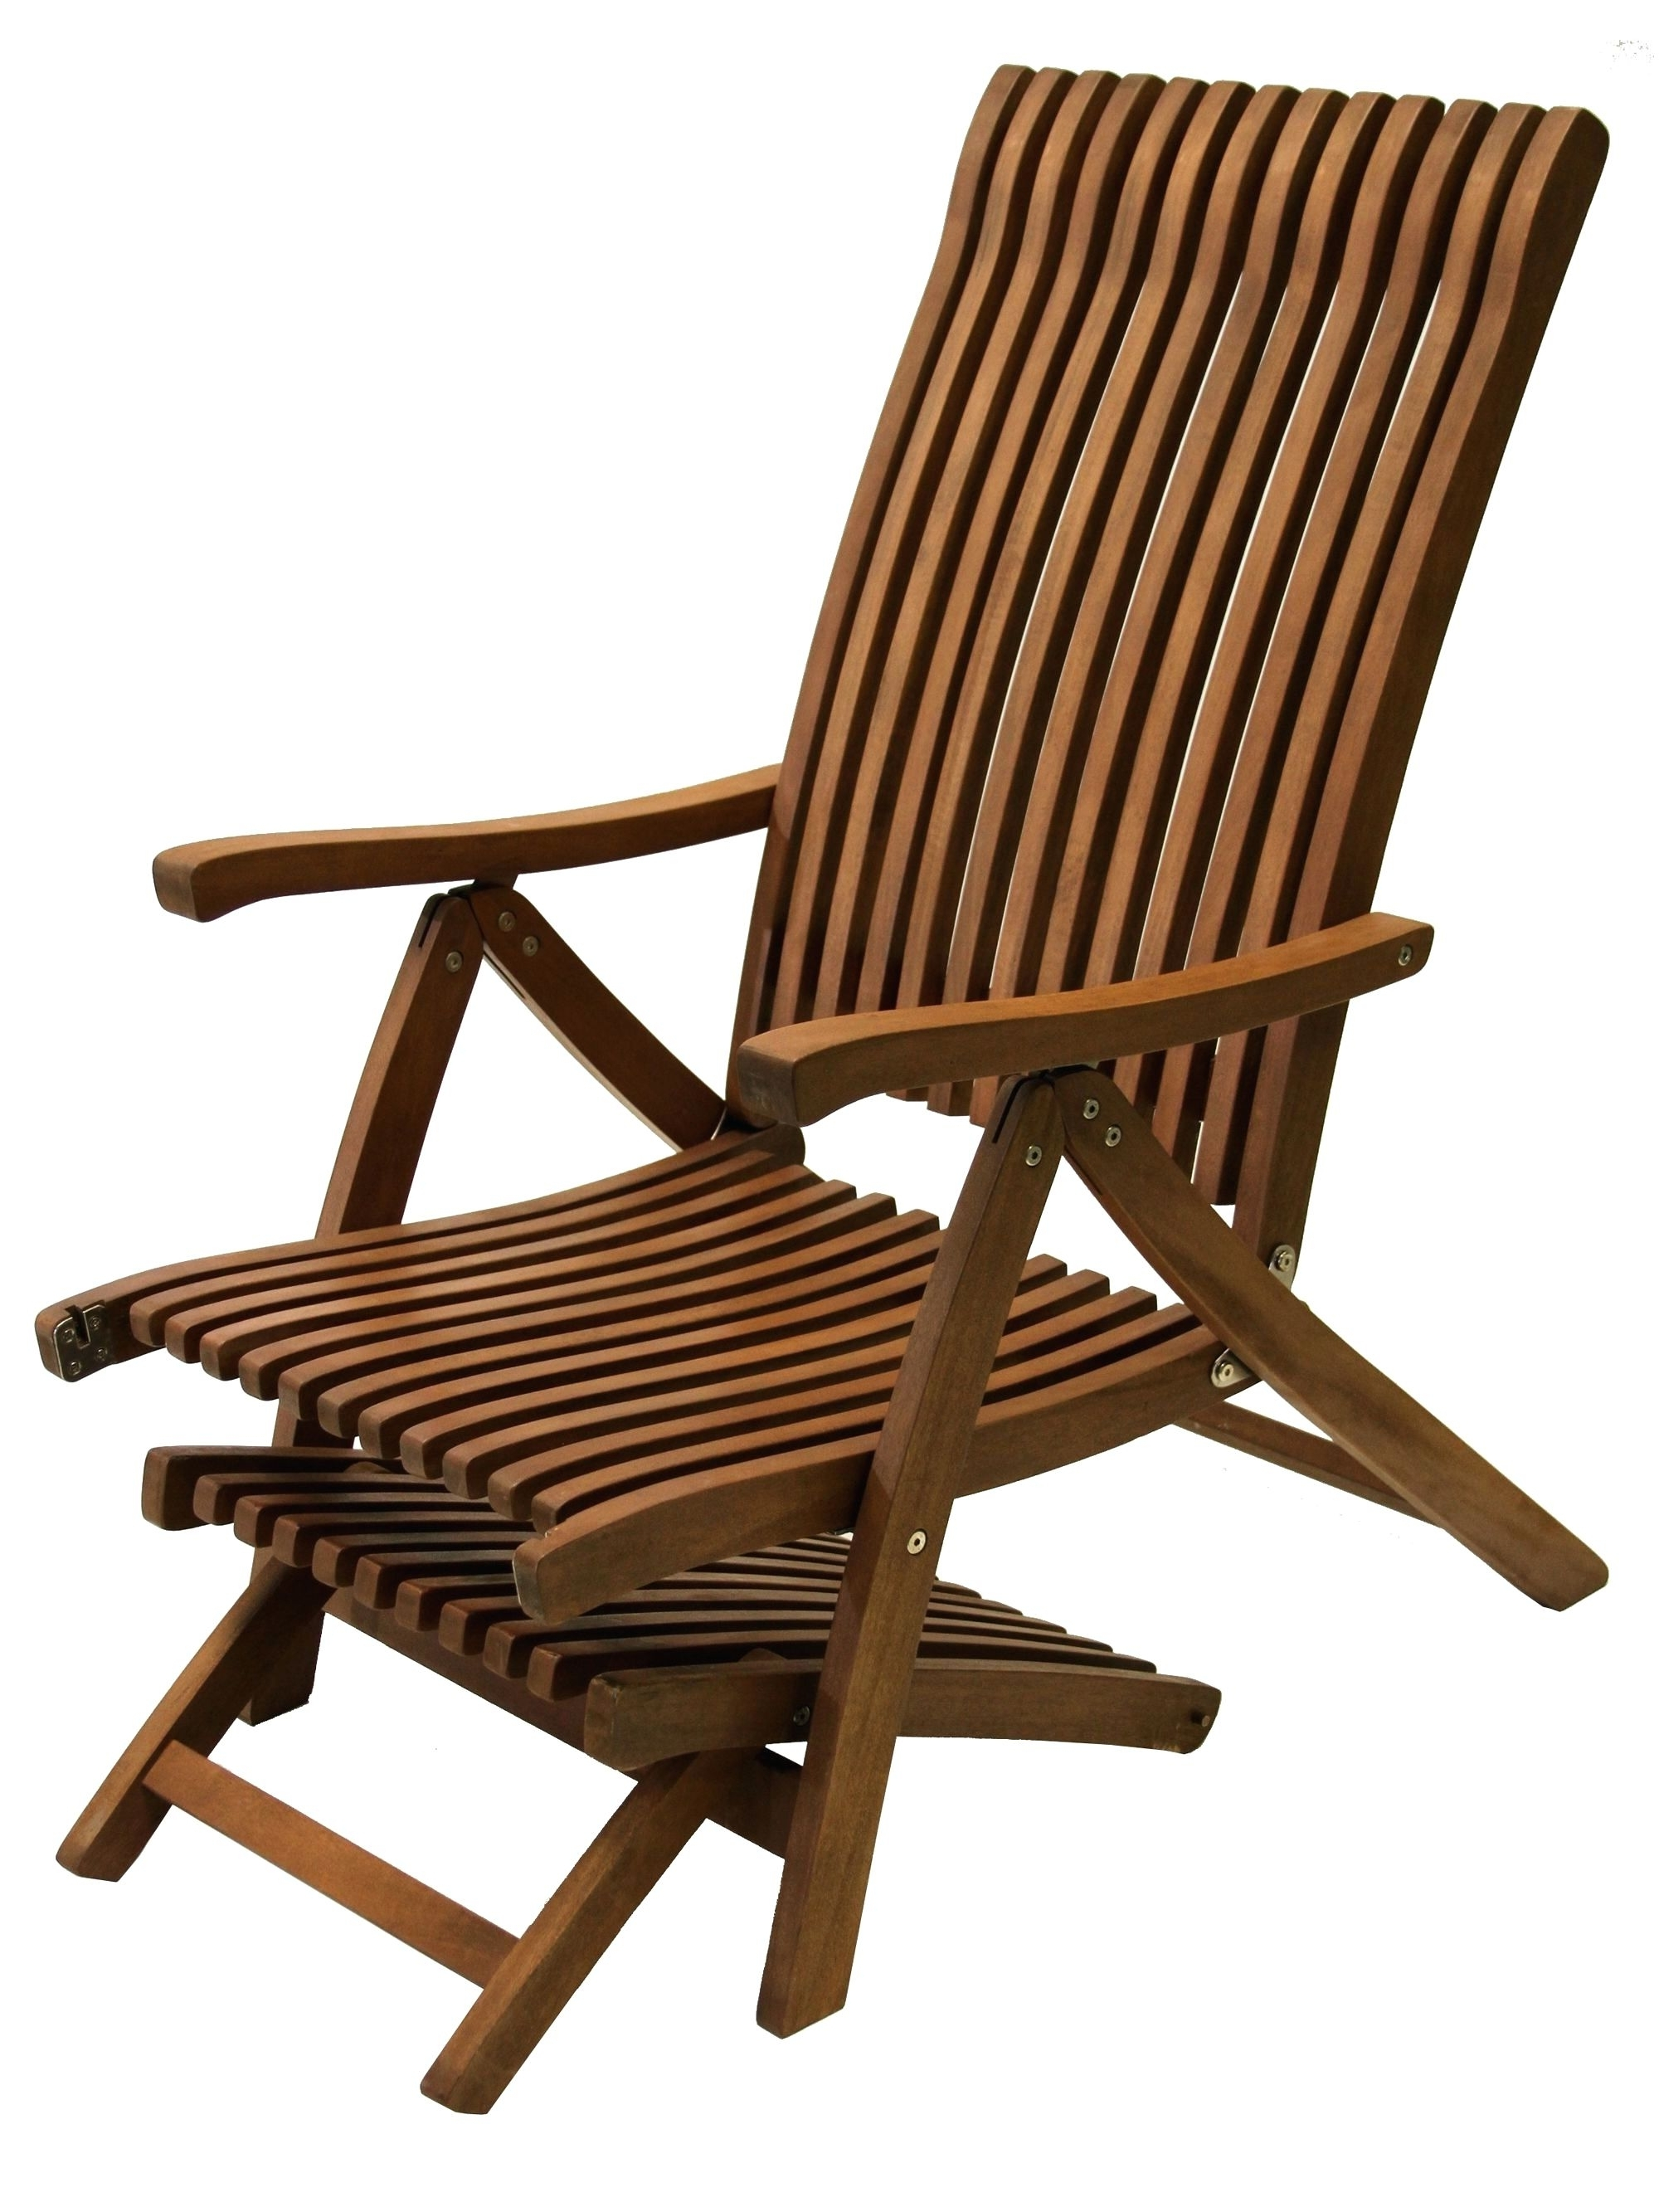 Web Chaise Lounge Lawn Chairs Regarding Most Popular Web Chaise Lounge Chair • Lounge Chairs Ideas (View 8 of 15)